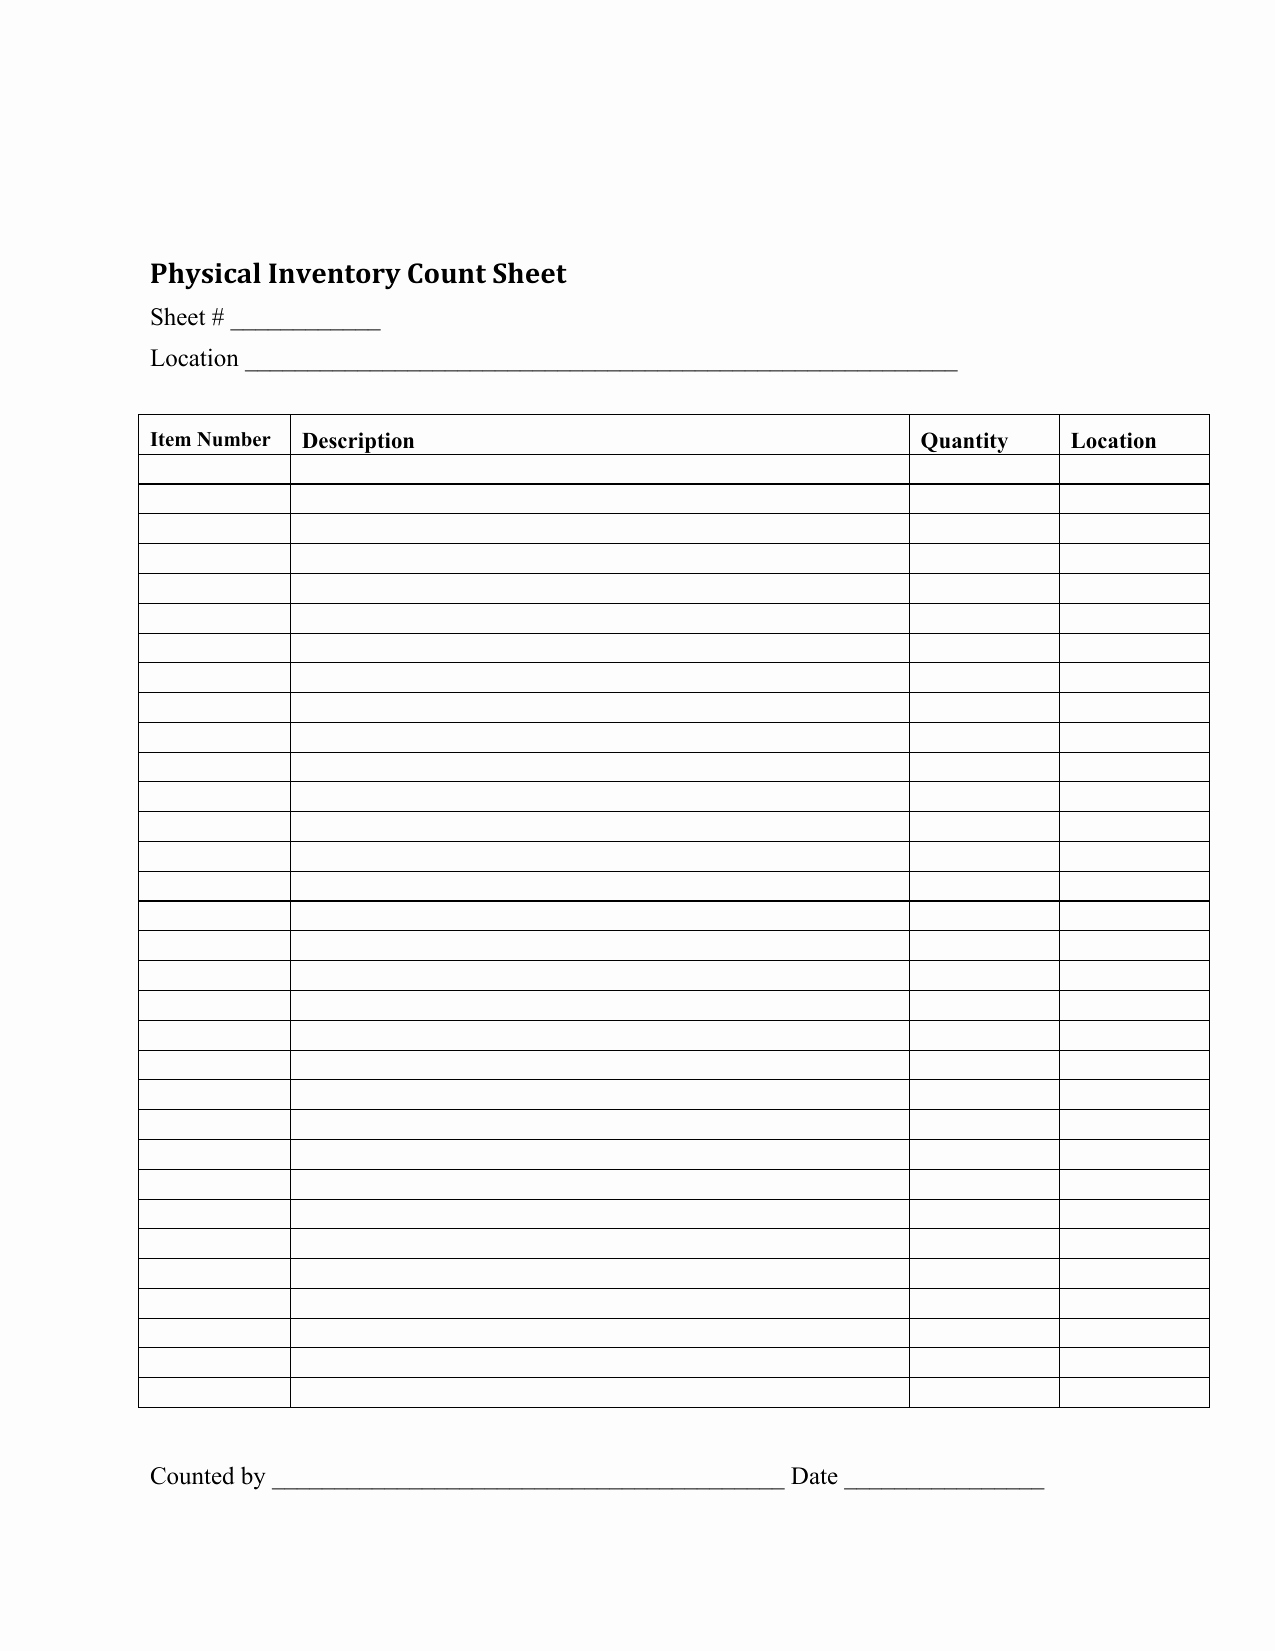 Physical Inventory Count Sheet Templates Unique Inventory Sheet Template Pdf 10 Easy Ways to Facilitate